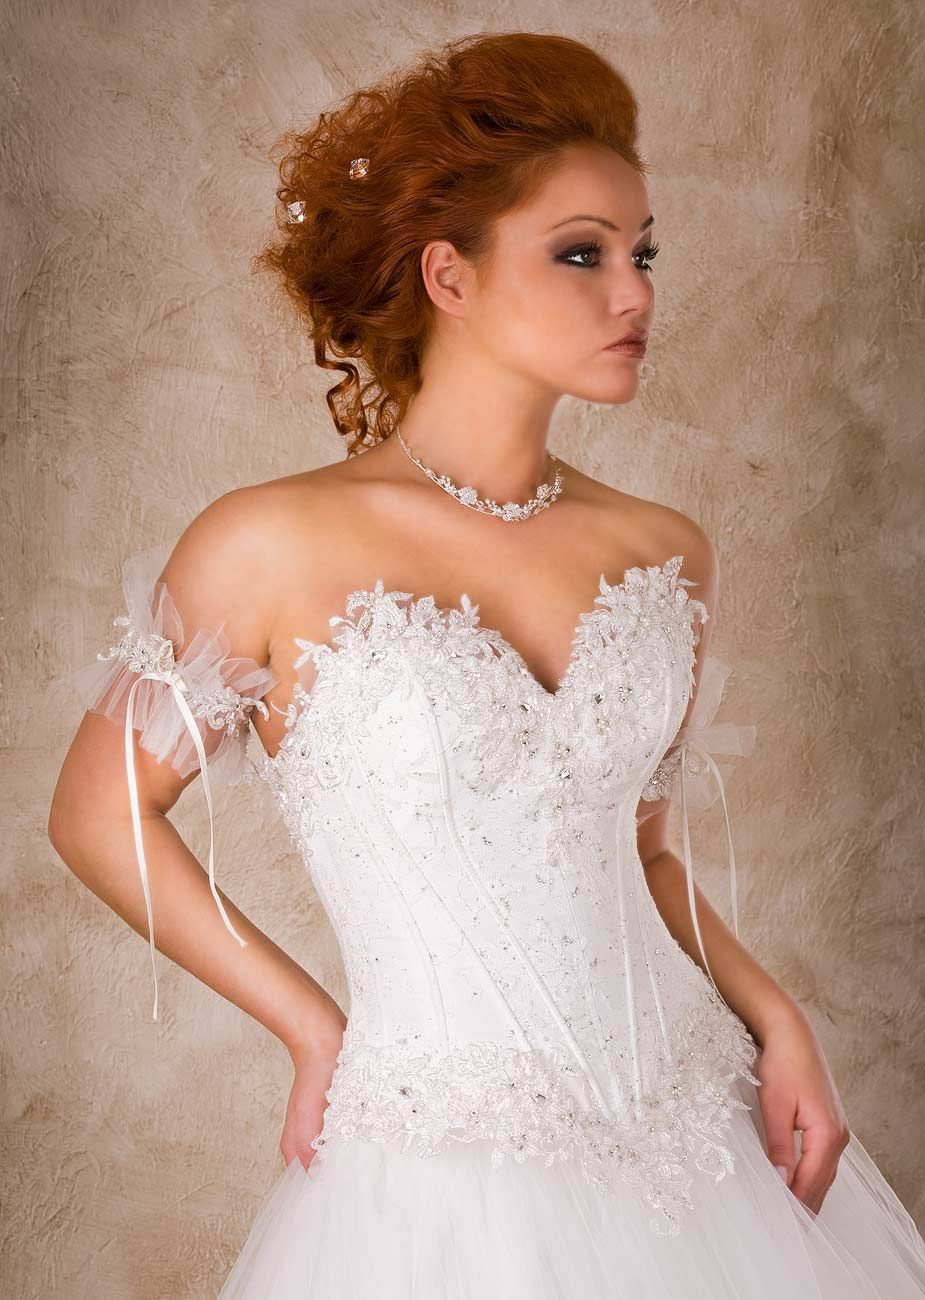 Cinderella by Farage available at Teokath of London | Wedding ...